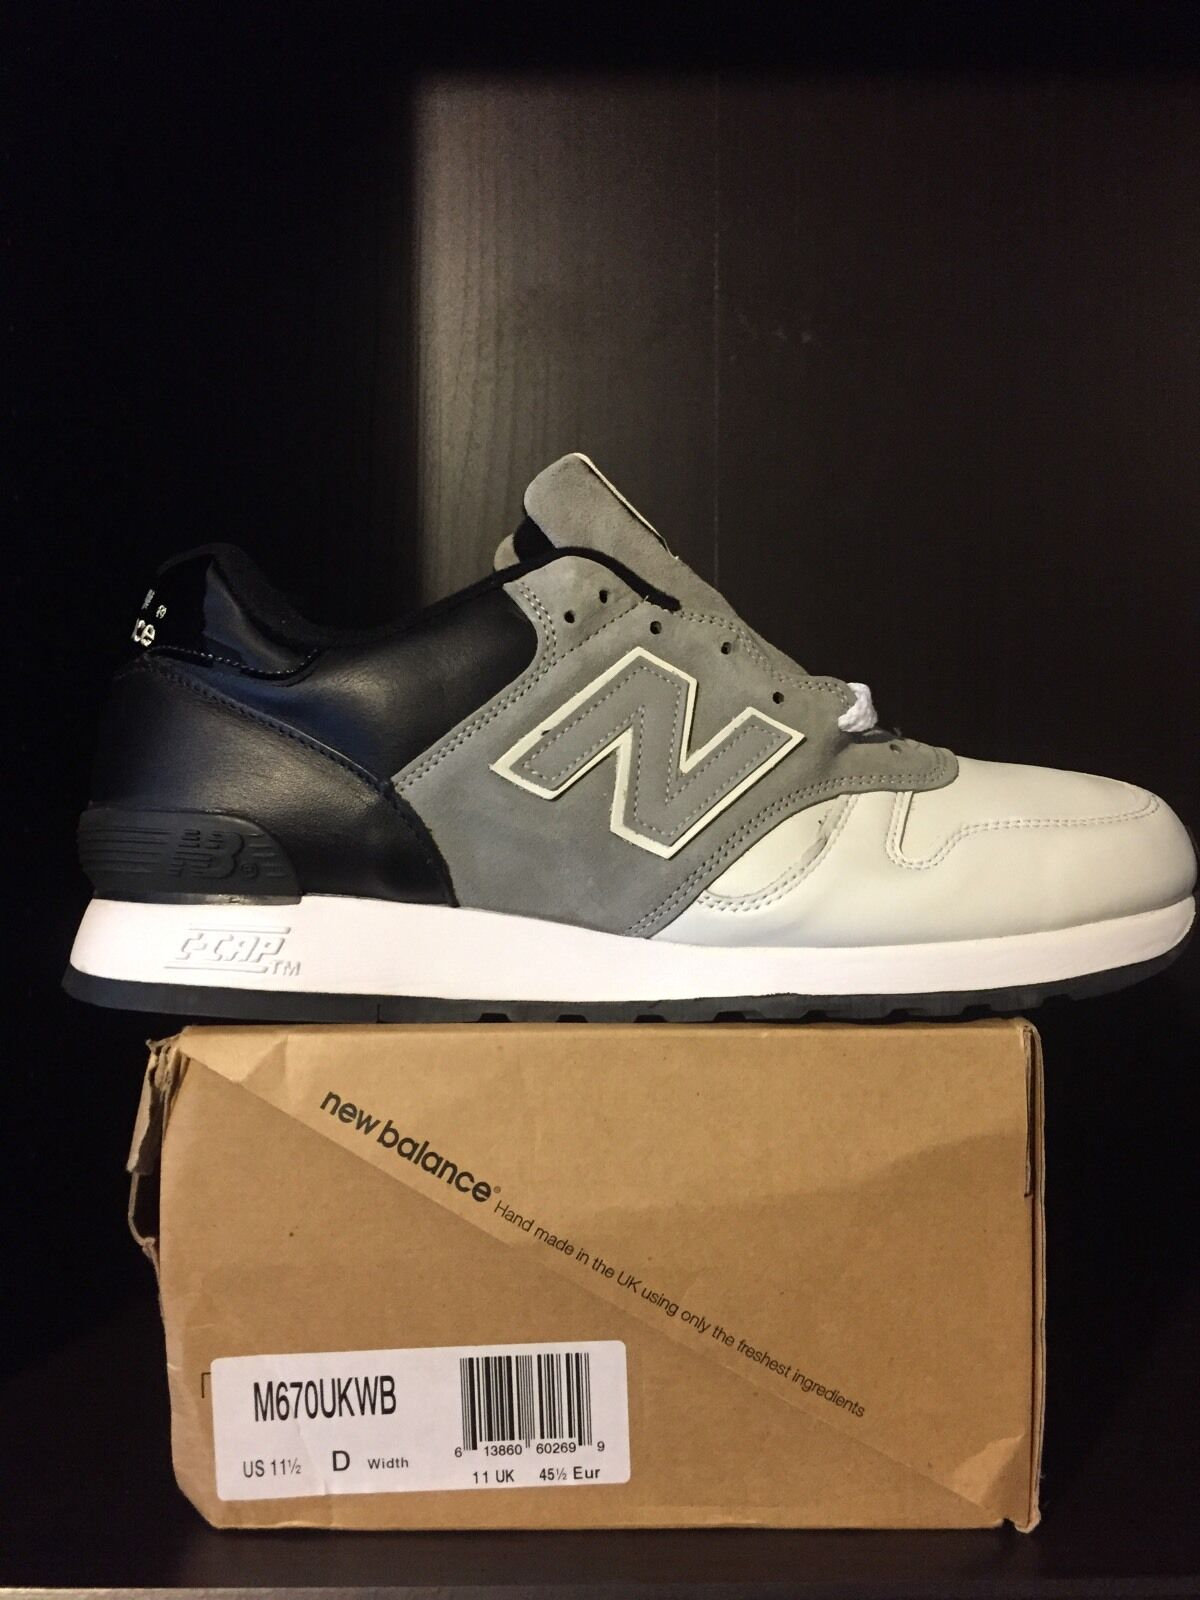 2007 New Balance M670UKWB  Weißhead  - US 11.5 - Made in England - RARE